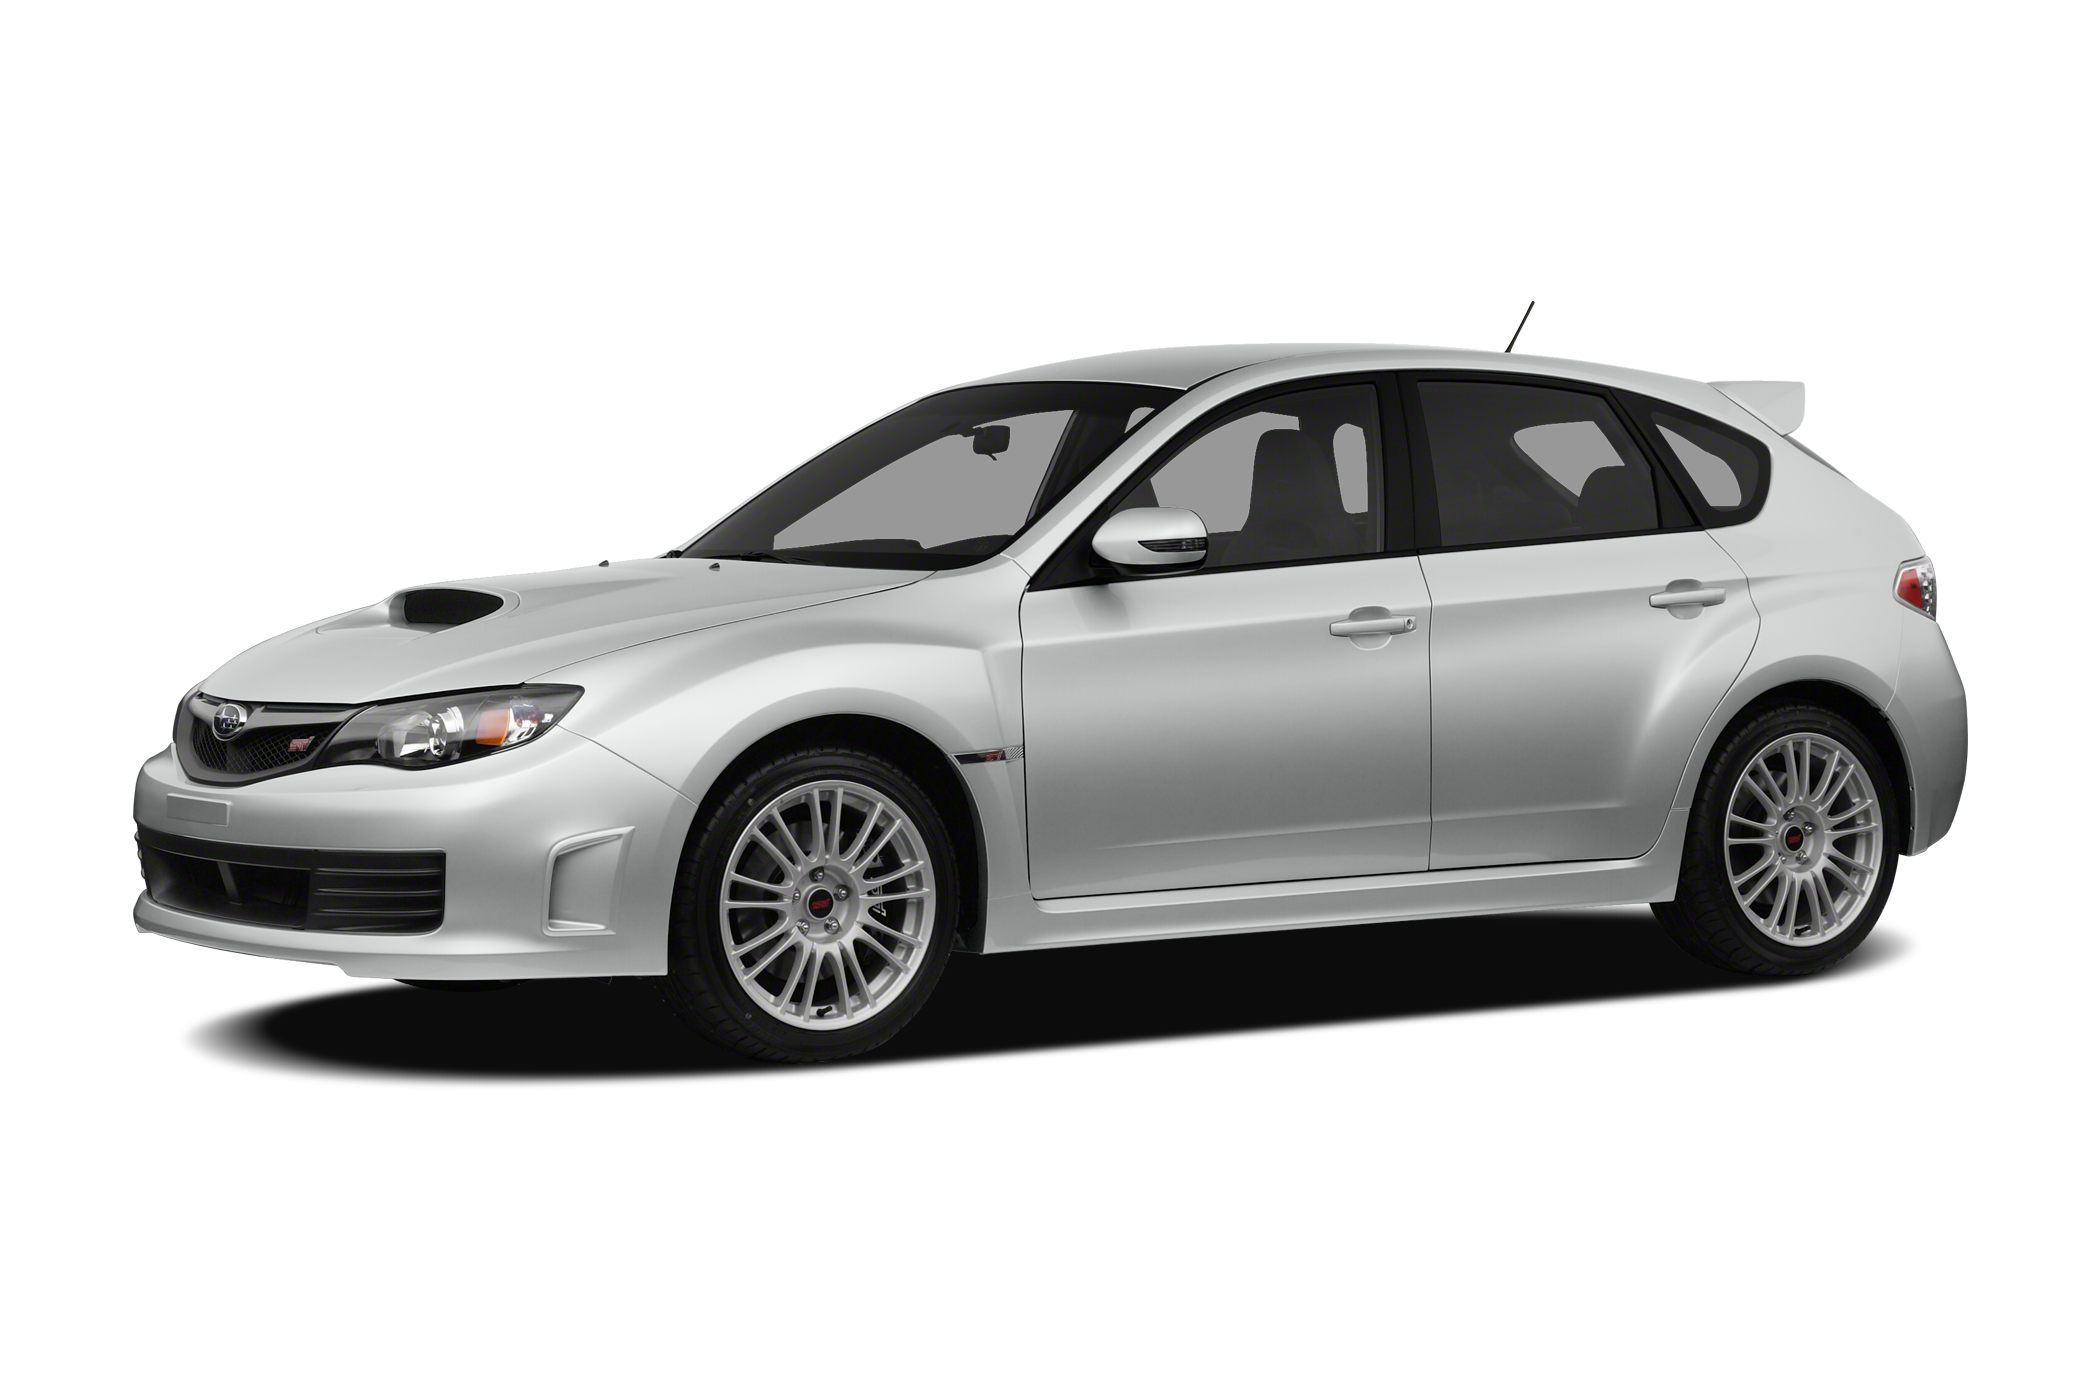 2012 subaru impreza wrx sti new car test drive